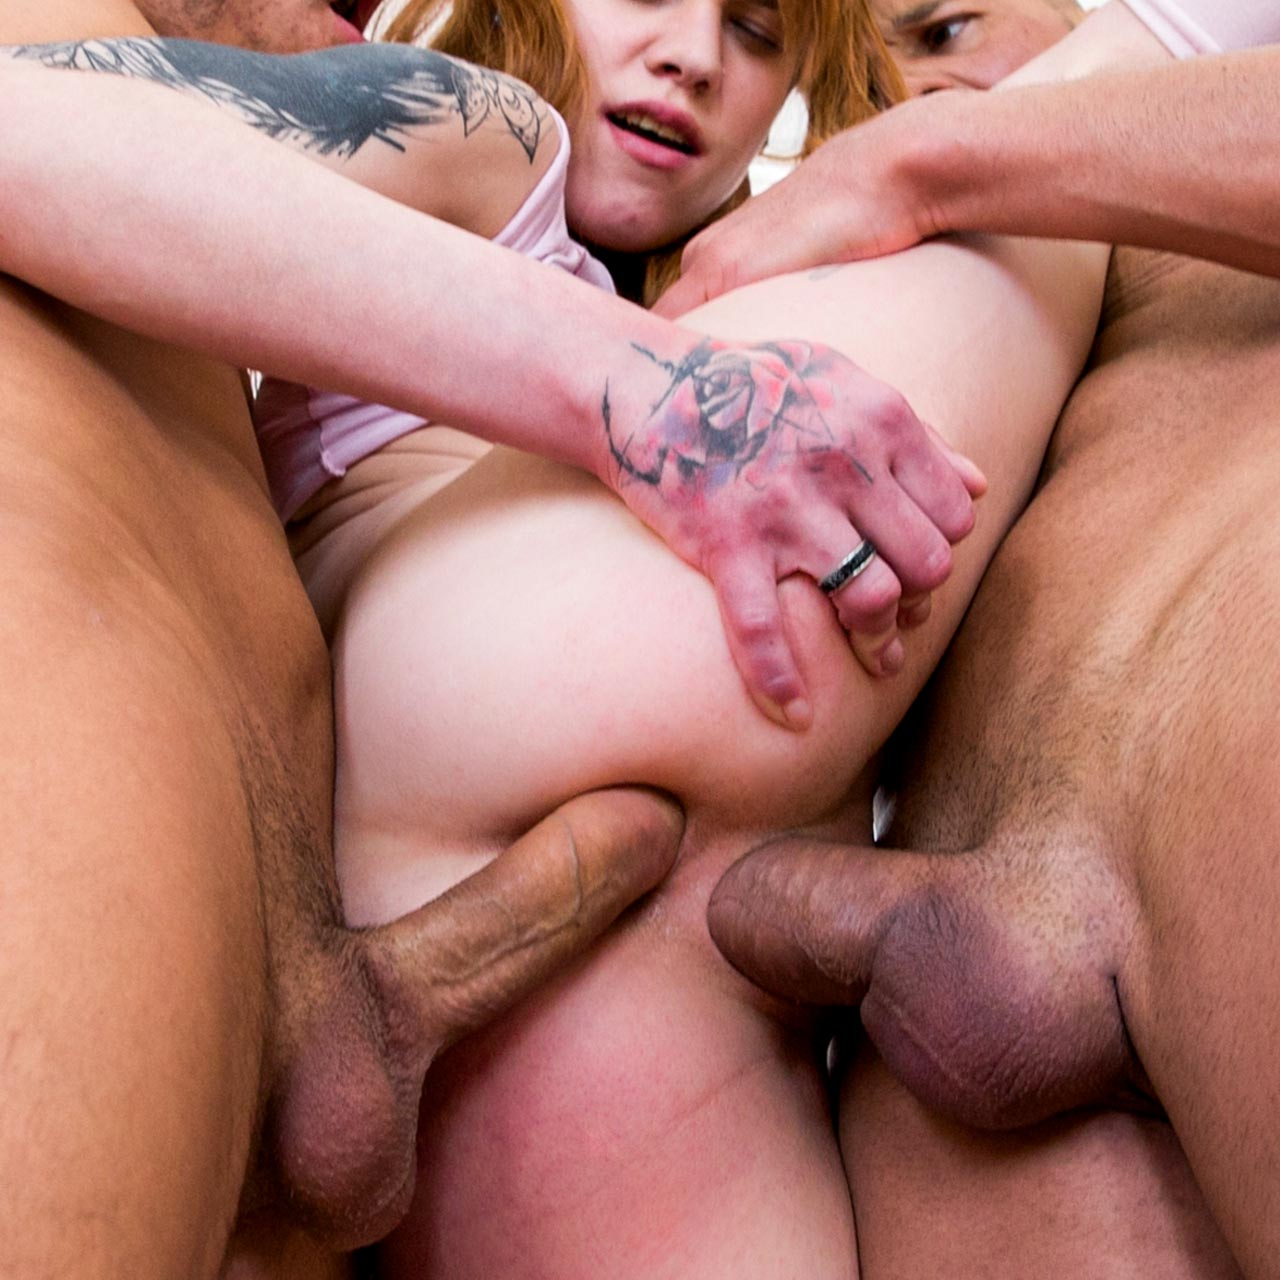 Mary Solaris, nude, Double Penetration and Anal Sex in a video for 21stSextury.